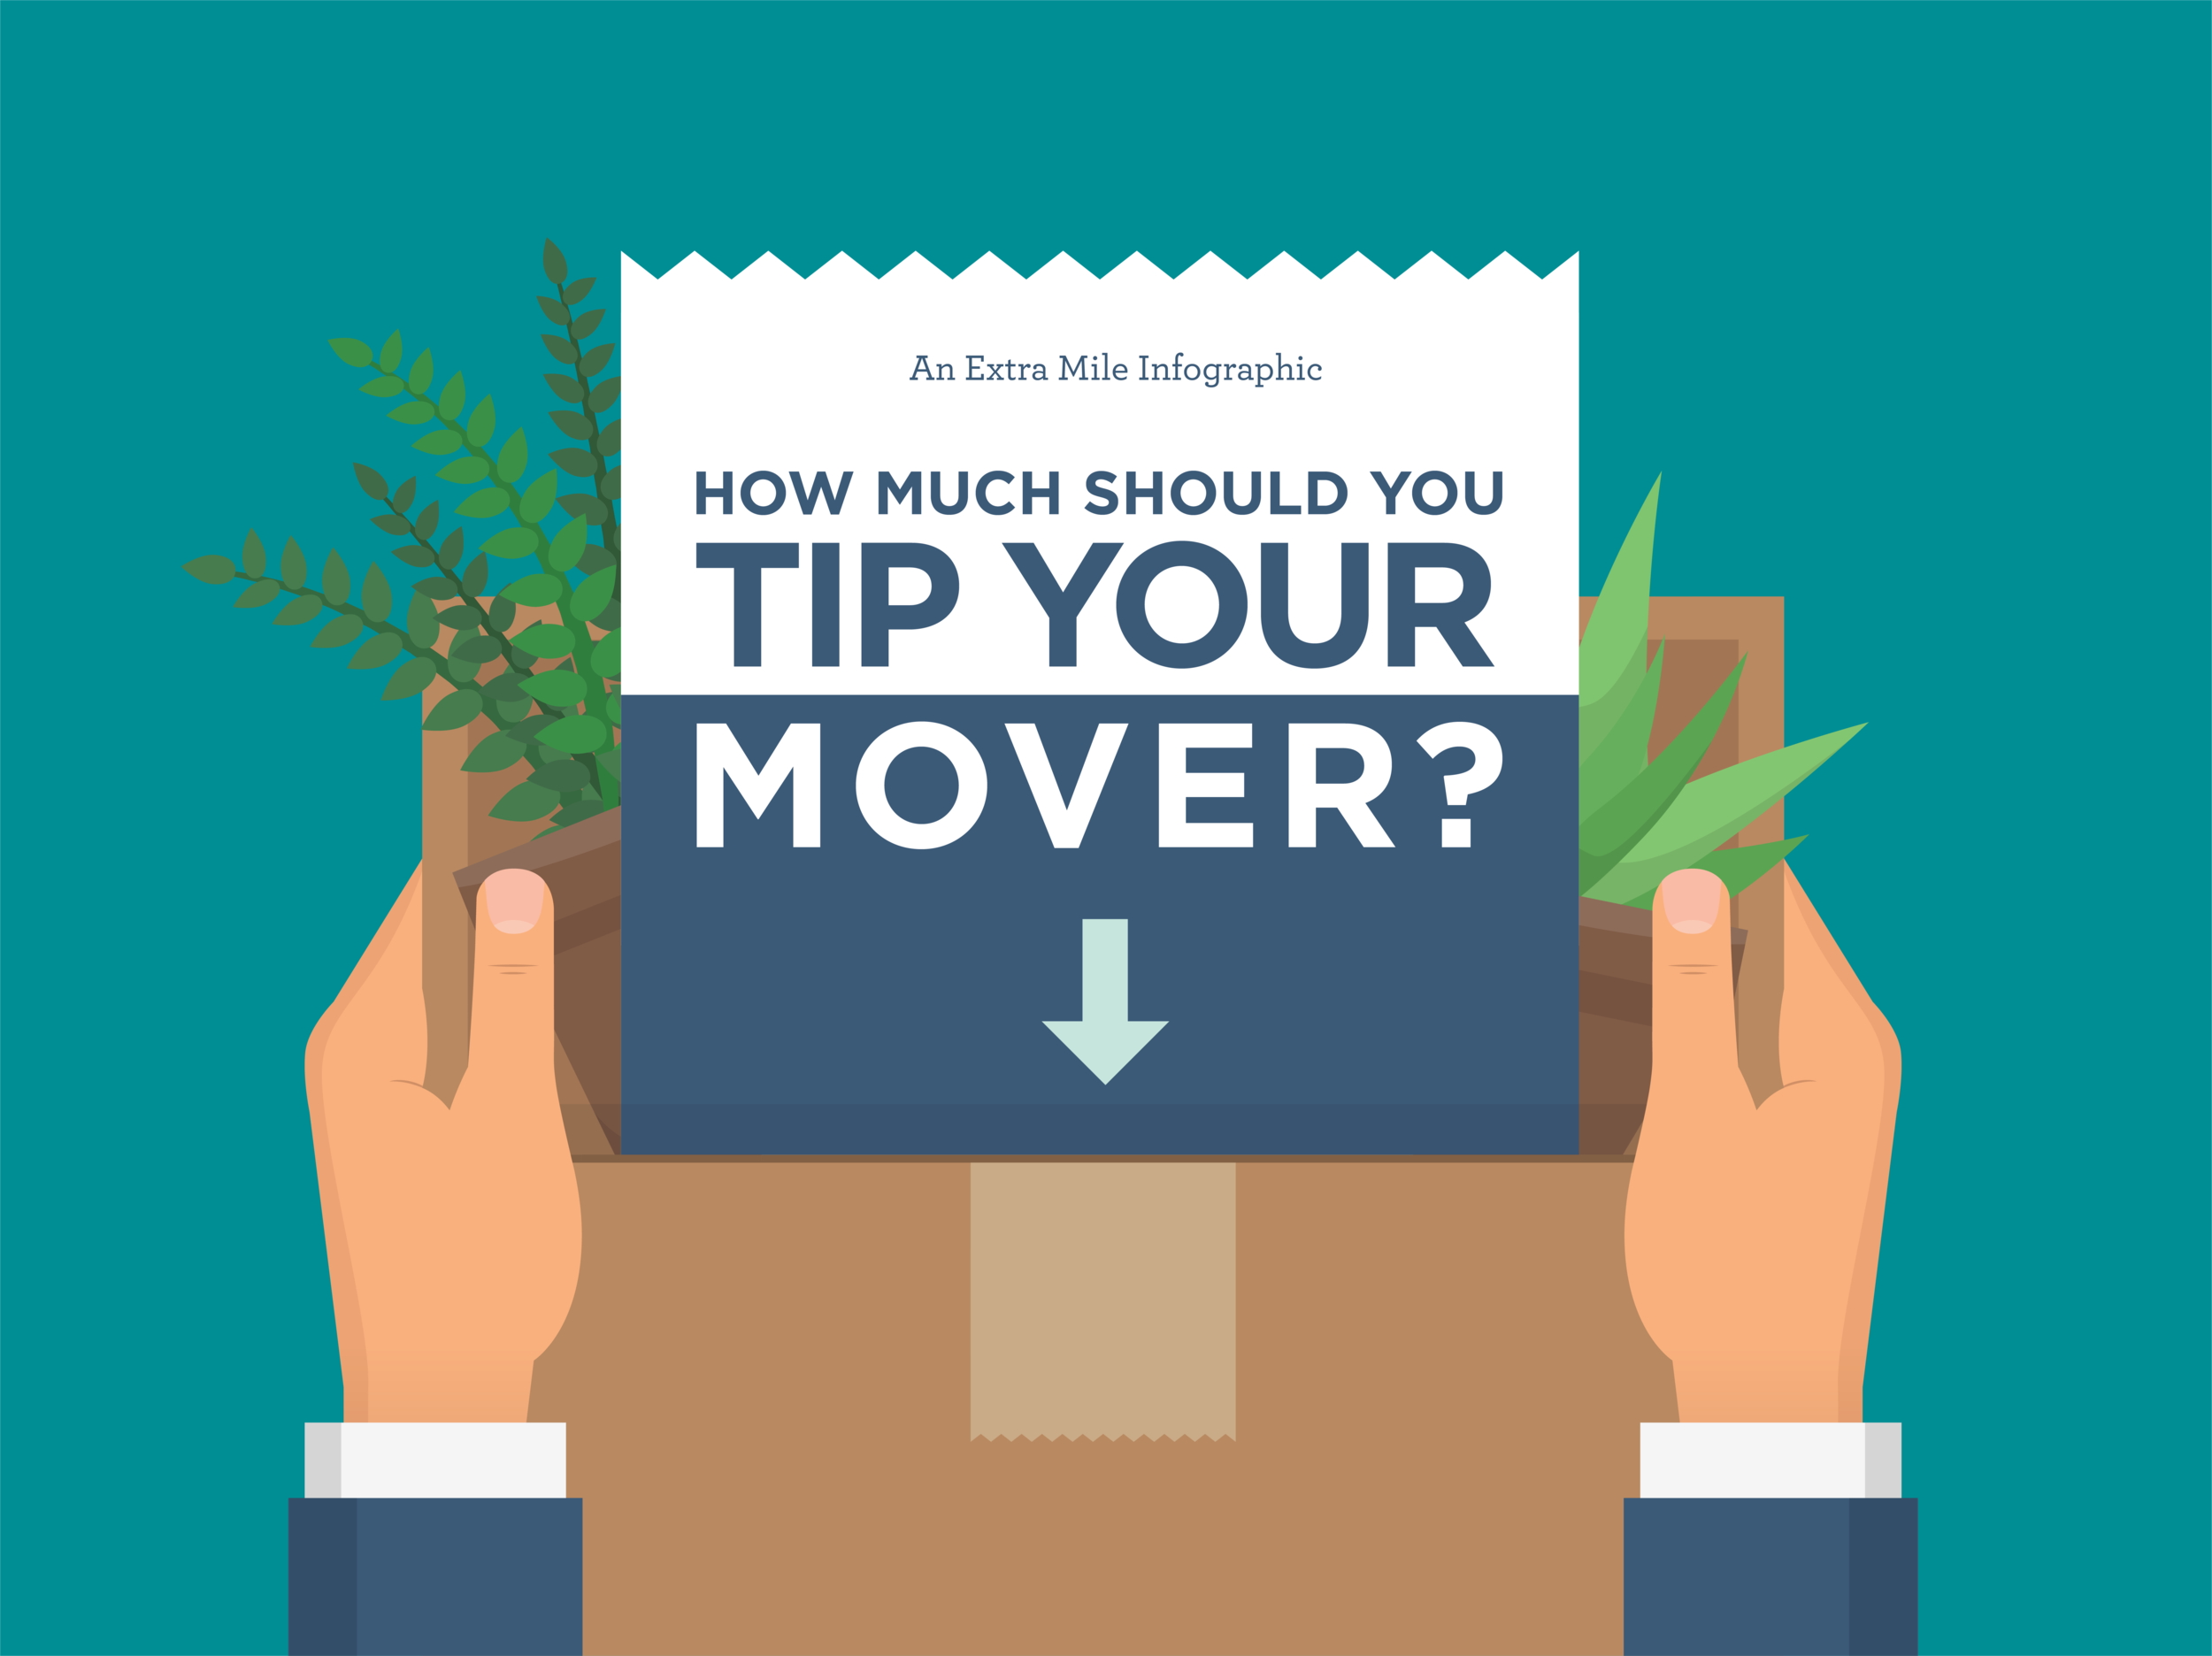 How Much Should You Tip Your Mover